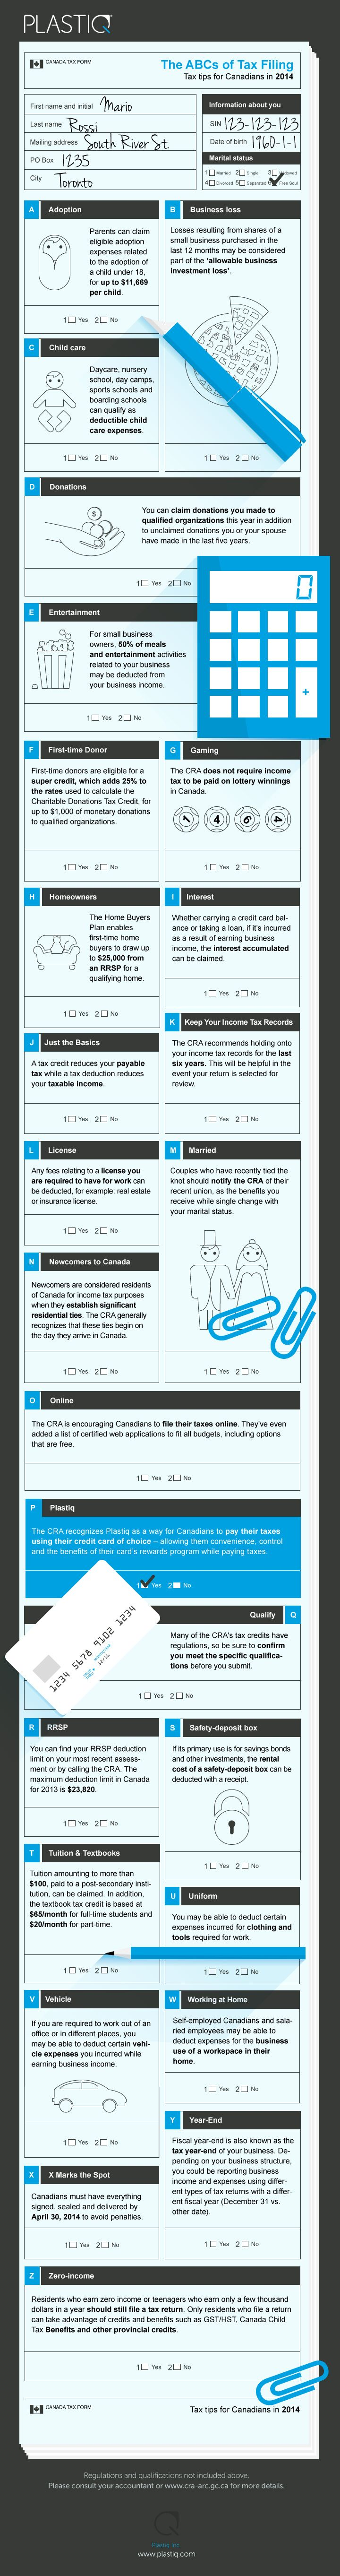 Canadian Taxes in a single infographic